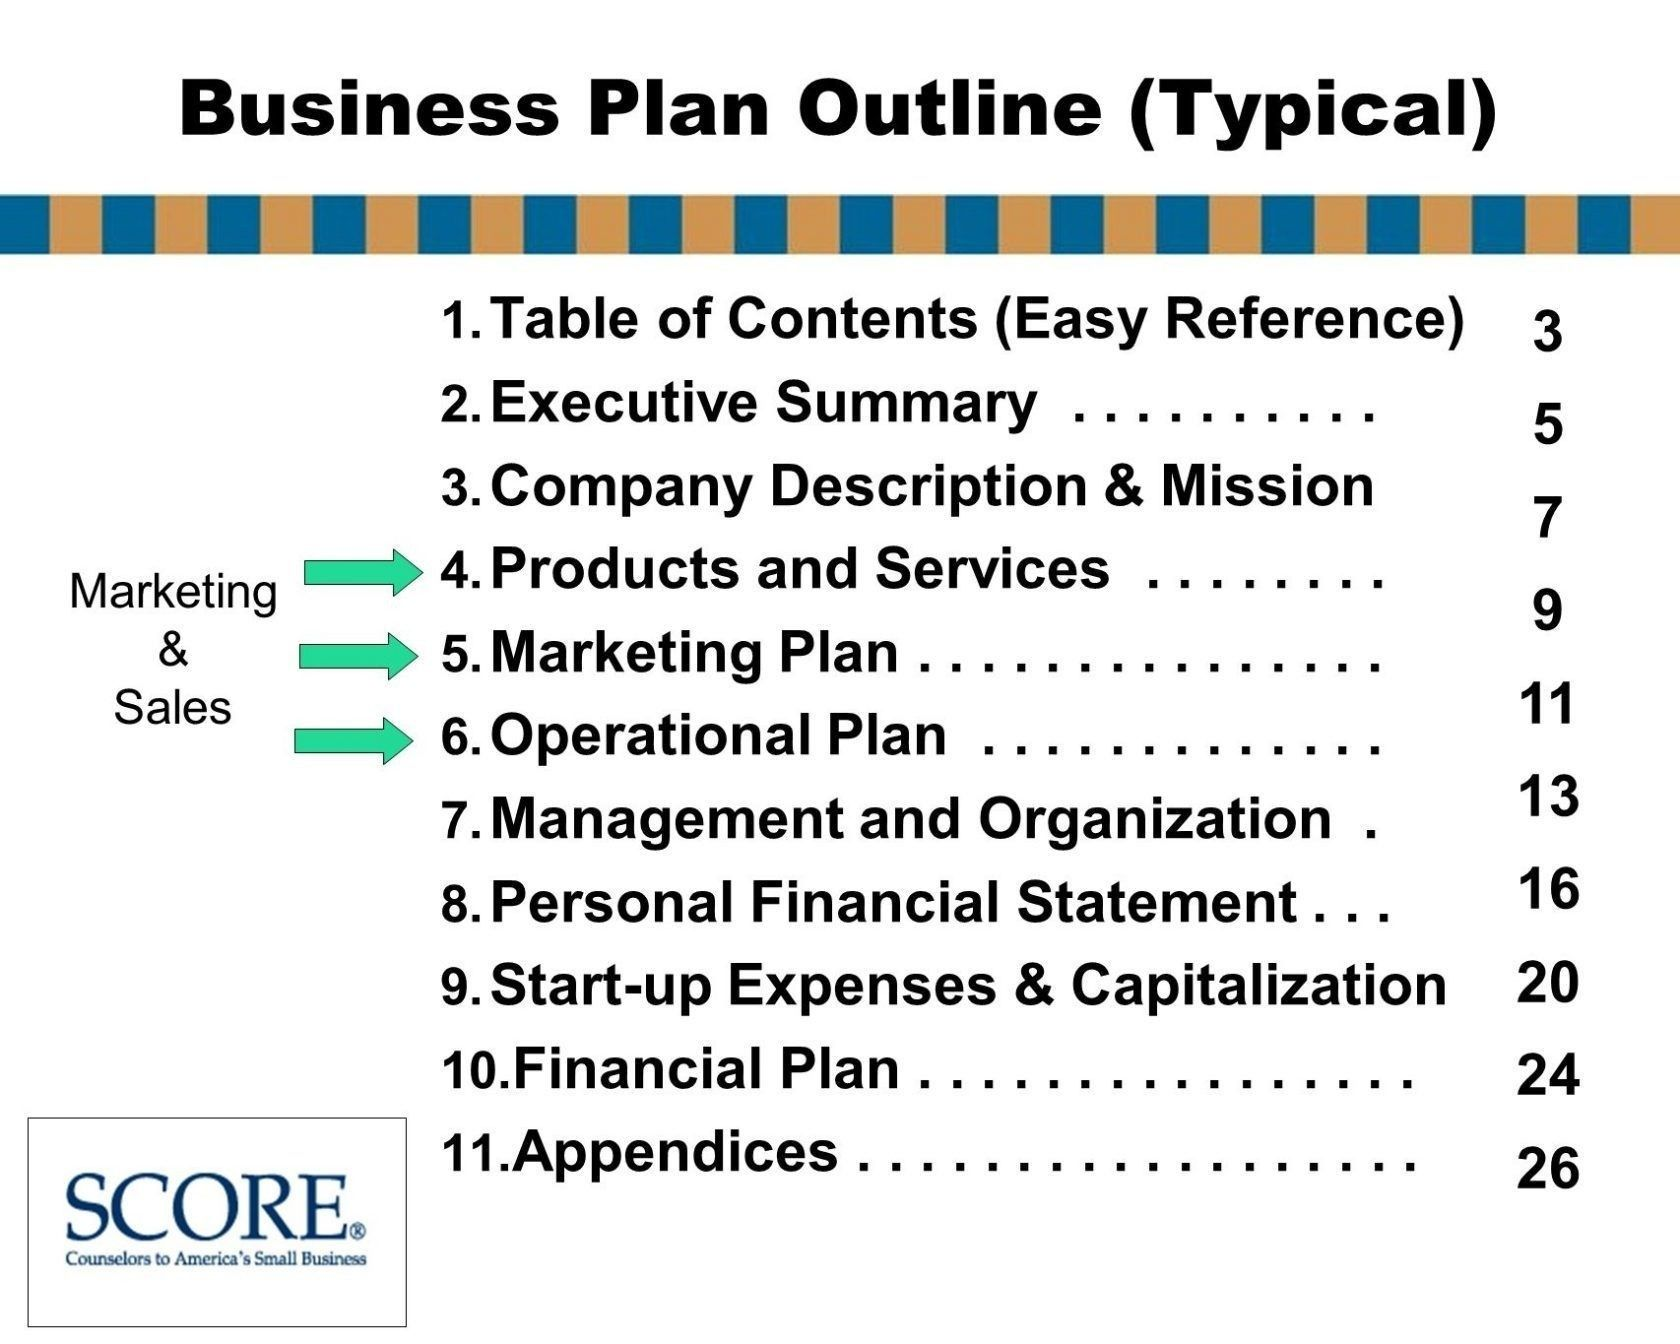 Score template for business plan annual book report competition for secondary school students